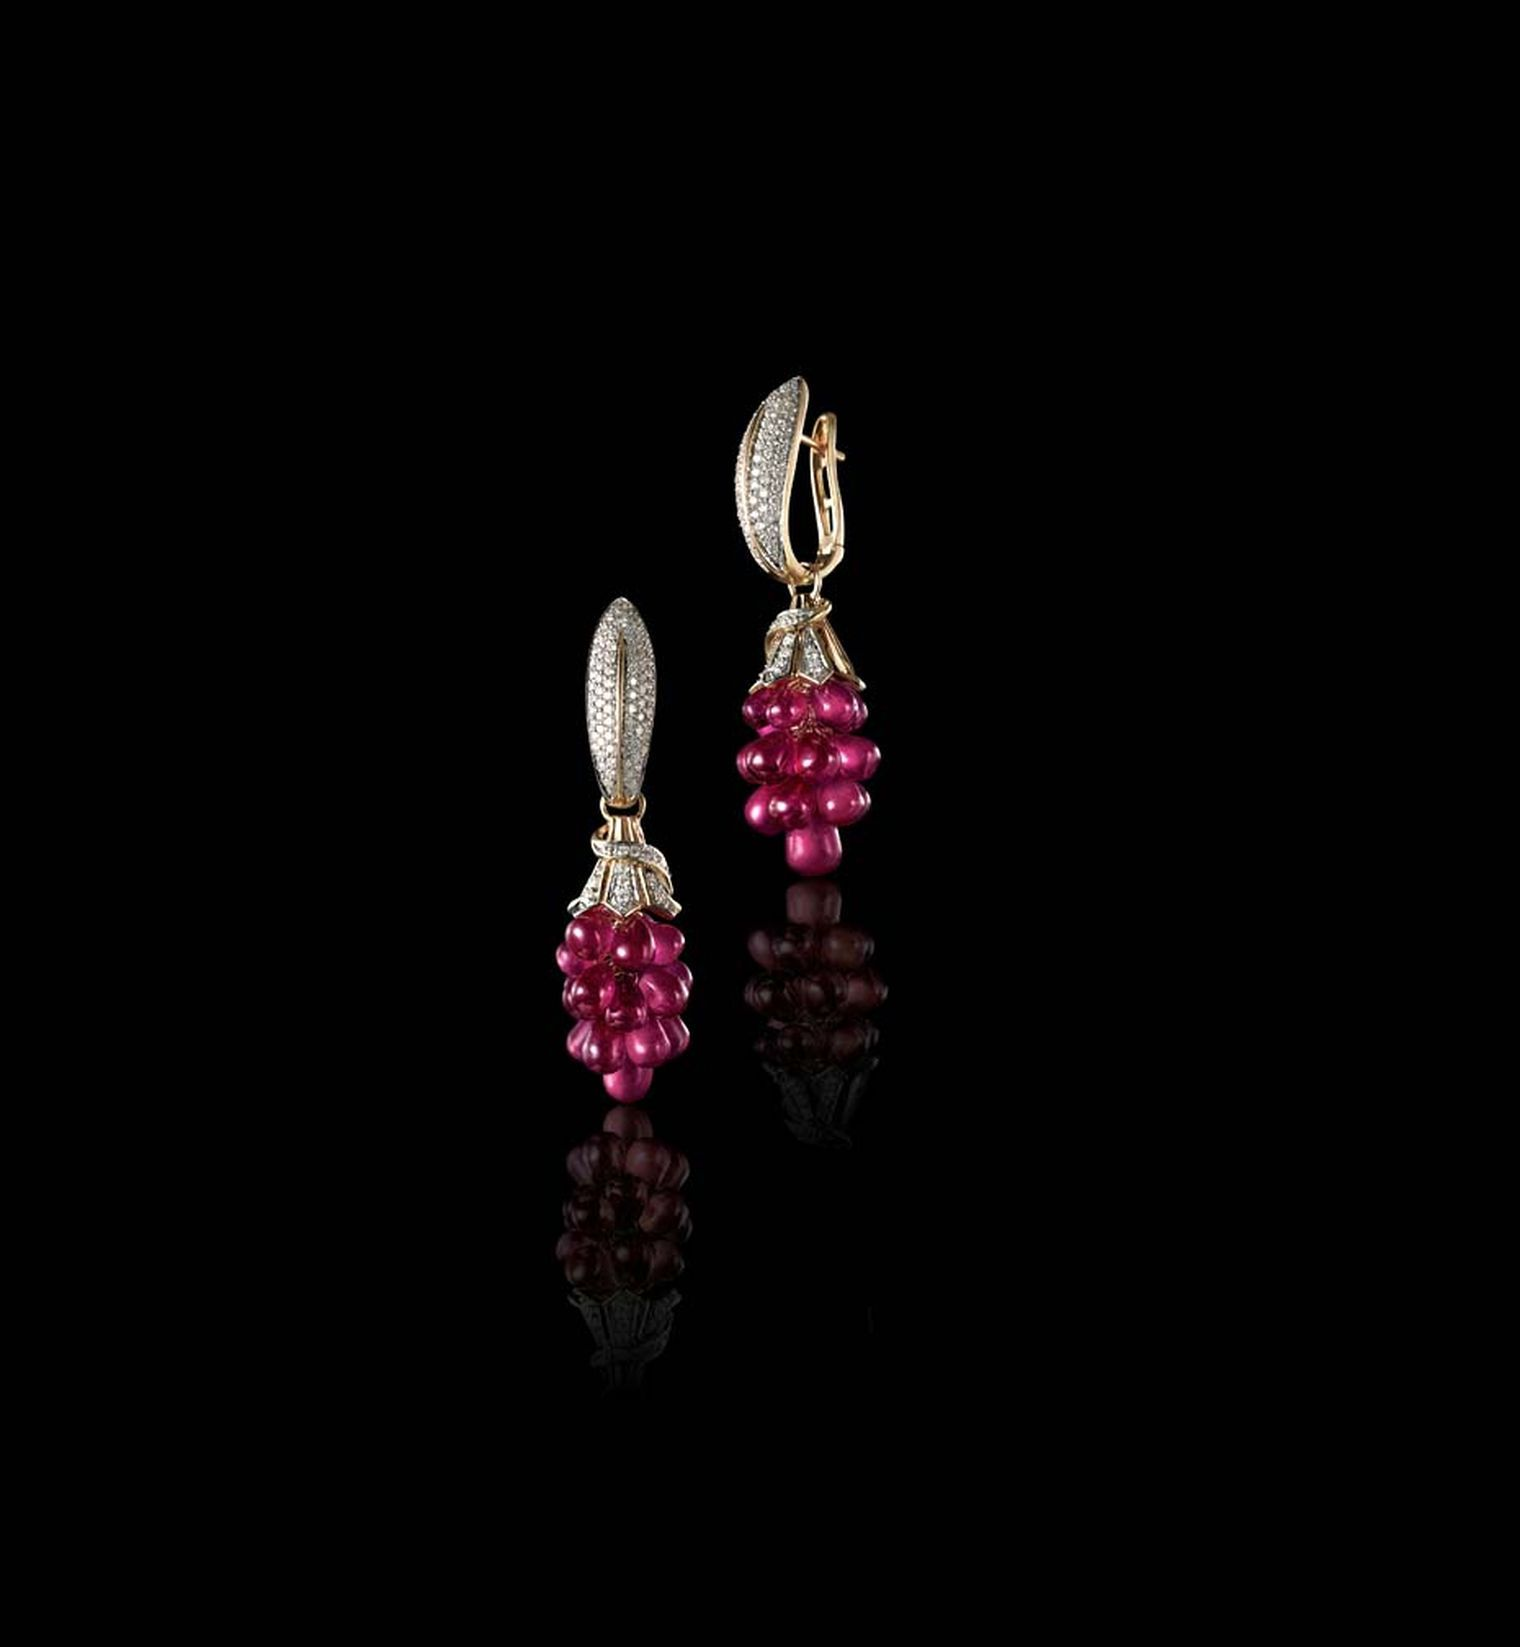 3a92831f8 Farah Khan for Tanishq ruby earrings with diamonds set in yellow gold.